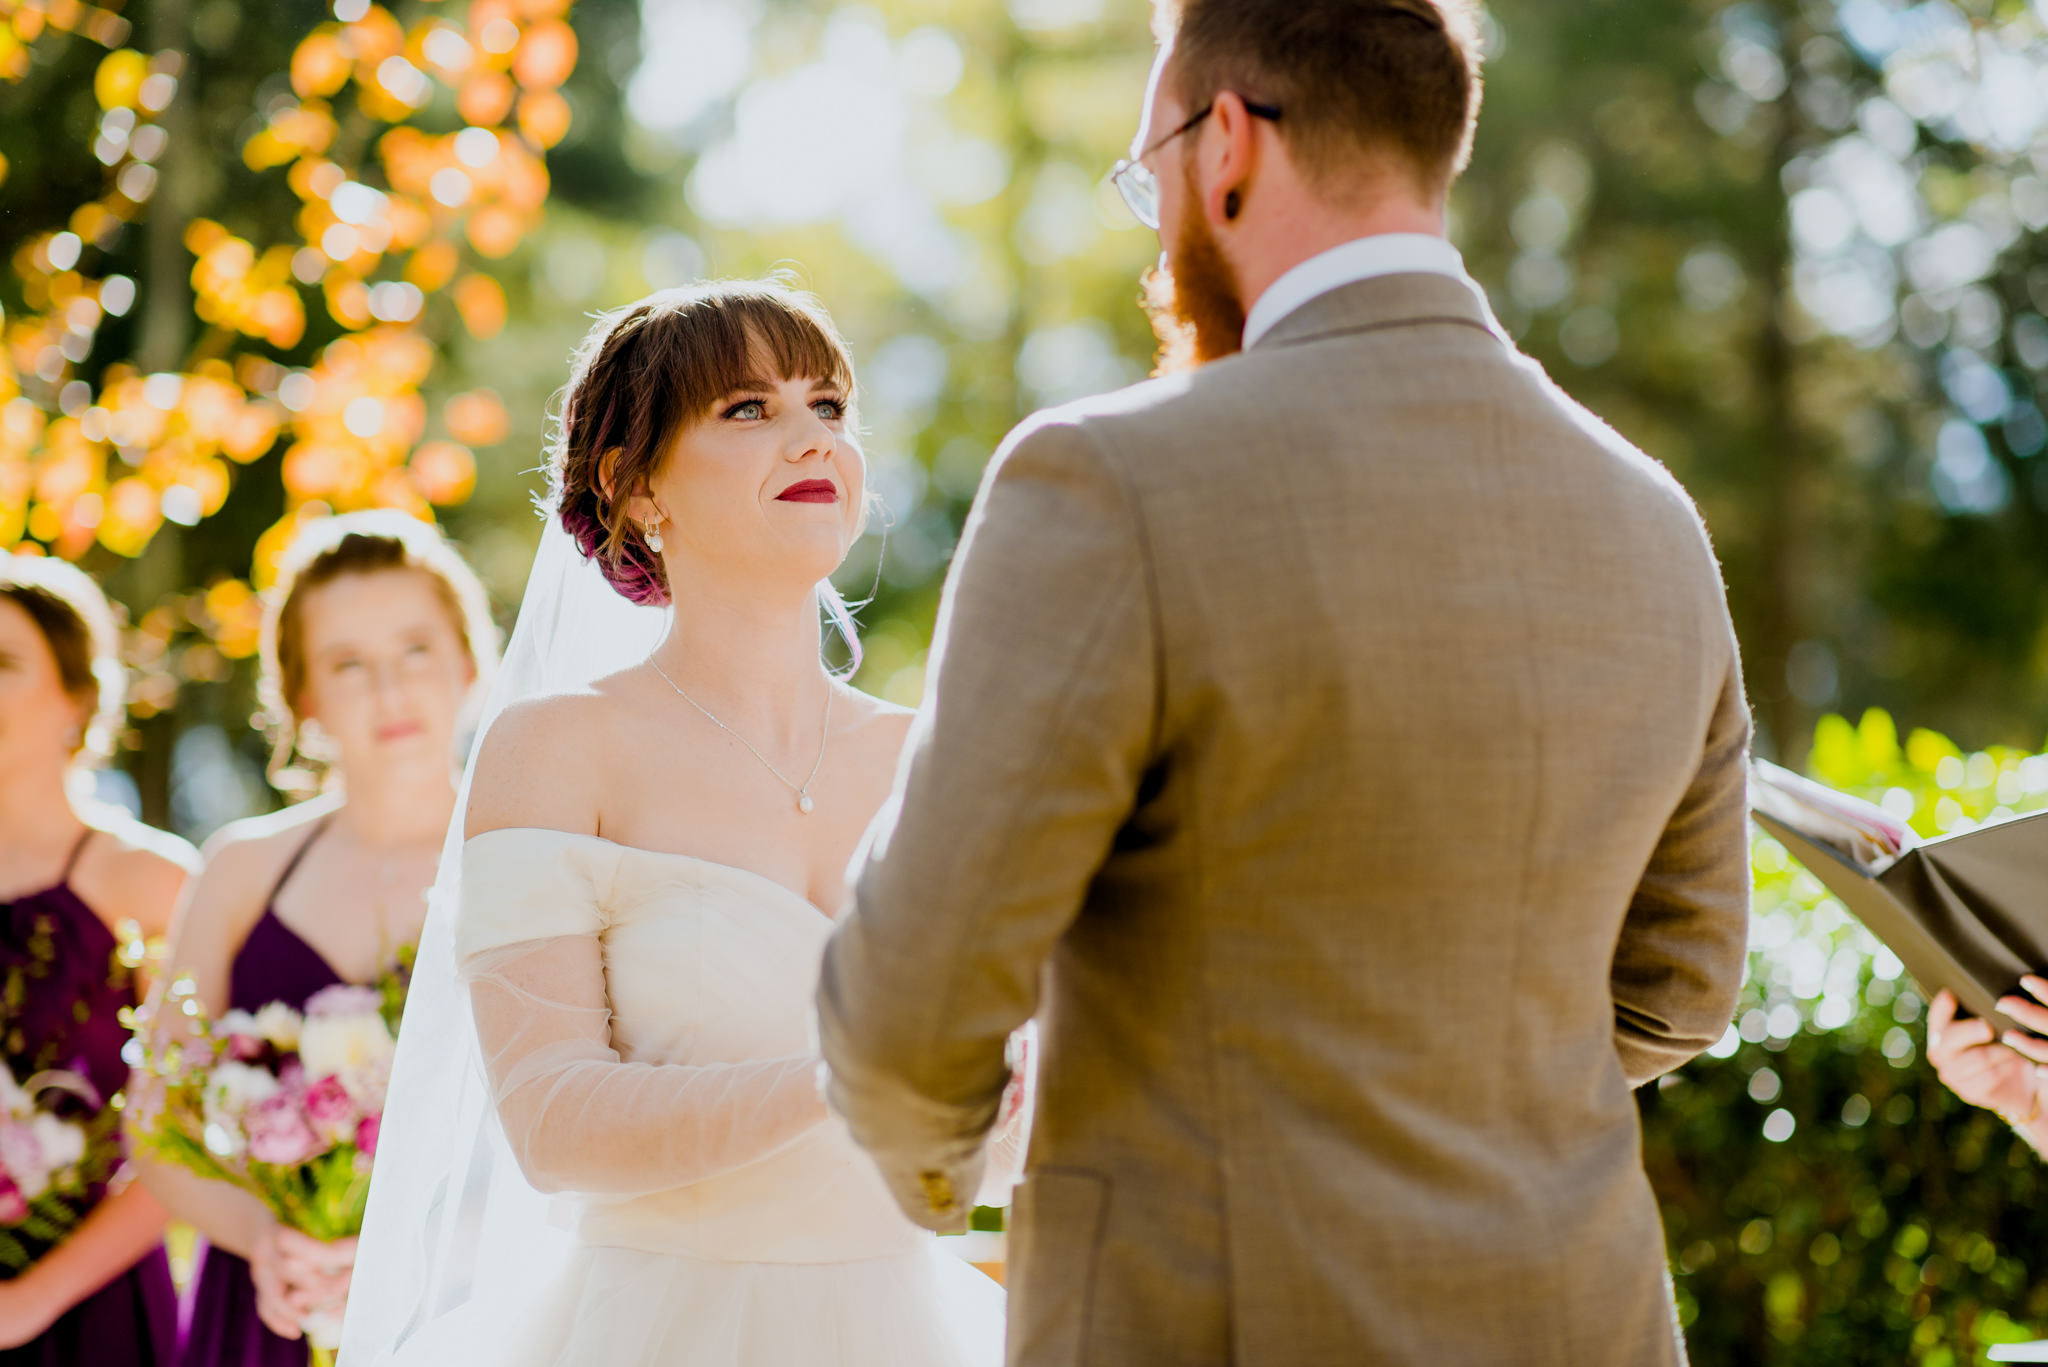 A bride smiles at her groom in anticipation during her outdoor wedding ceremony